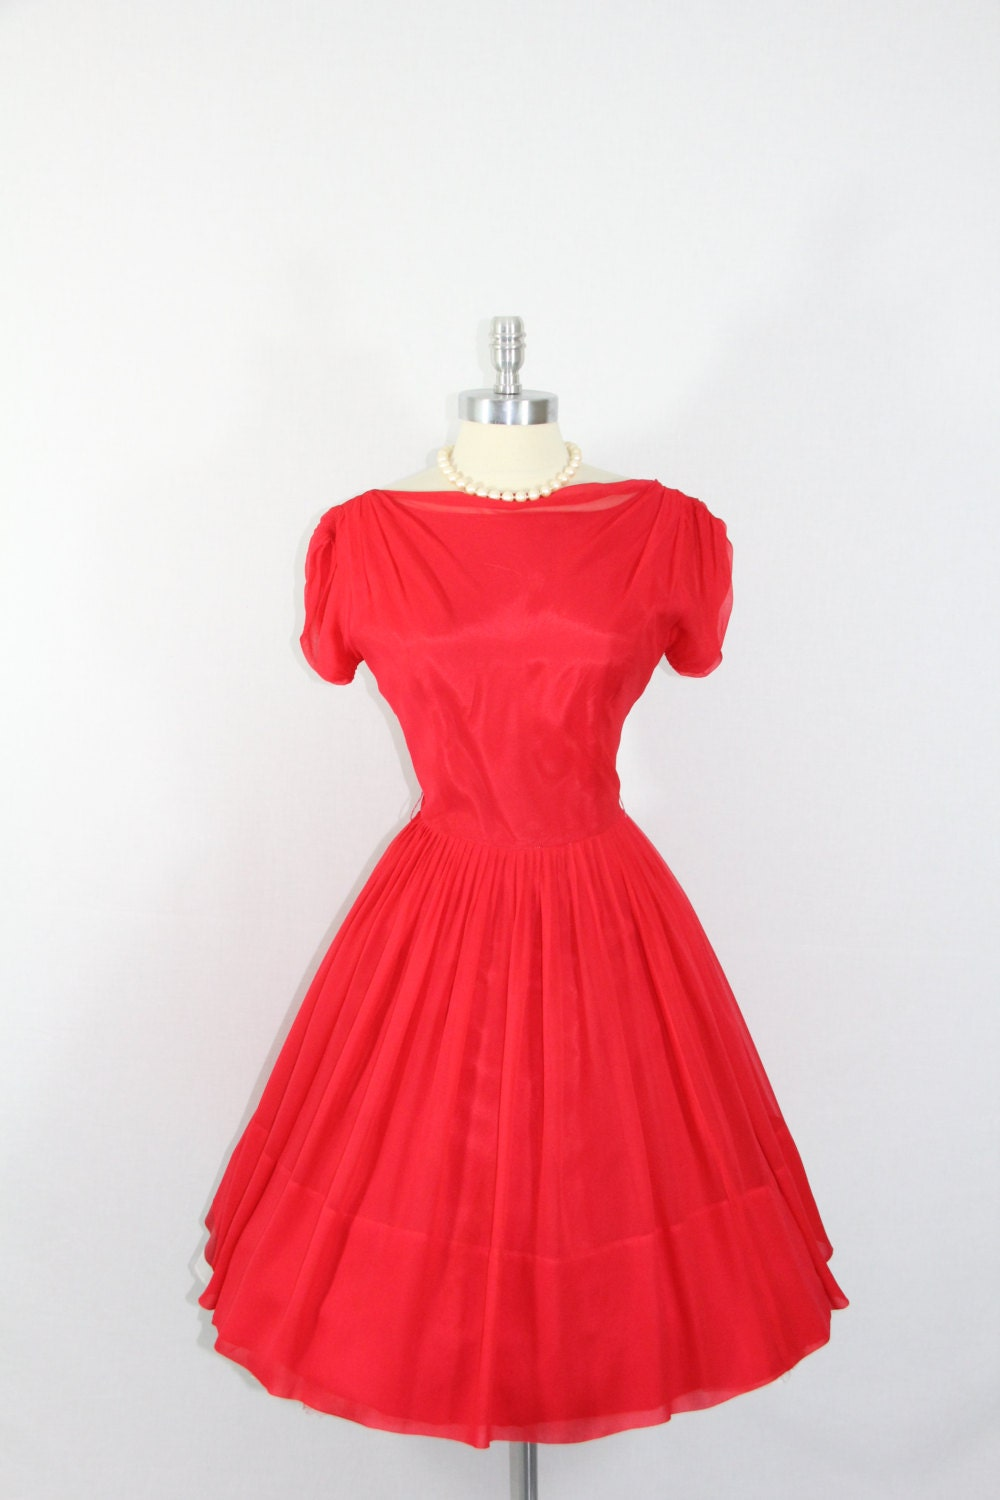 1950's Vintage Party Dress - Red Silk Chiffon Full Skirt Cocktail Party Dress